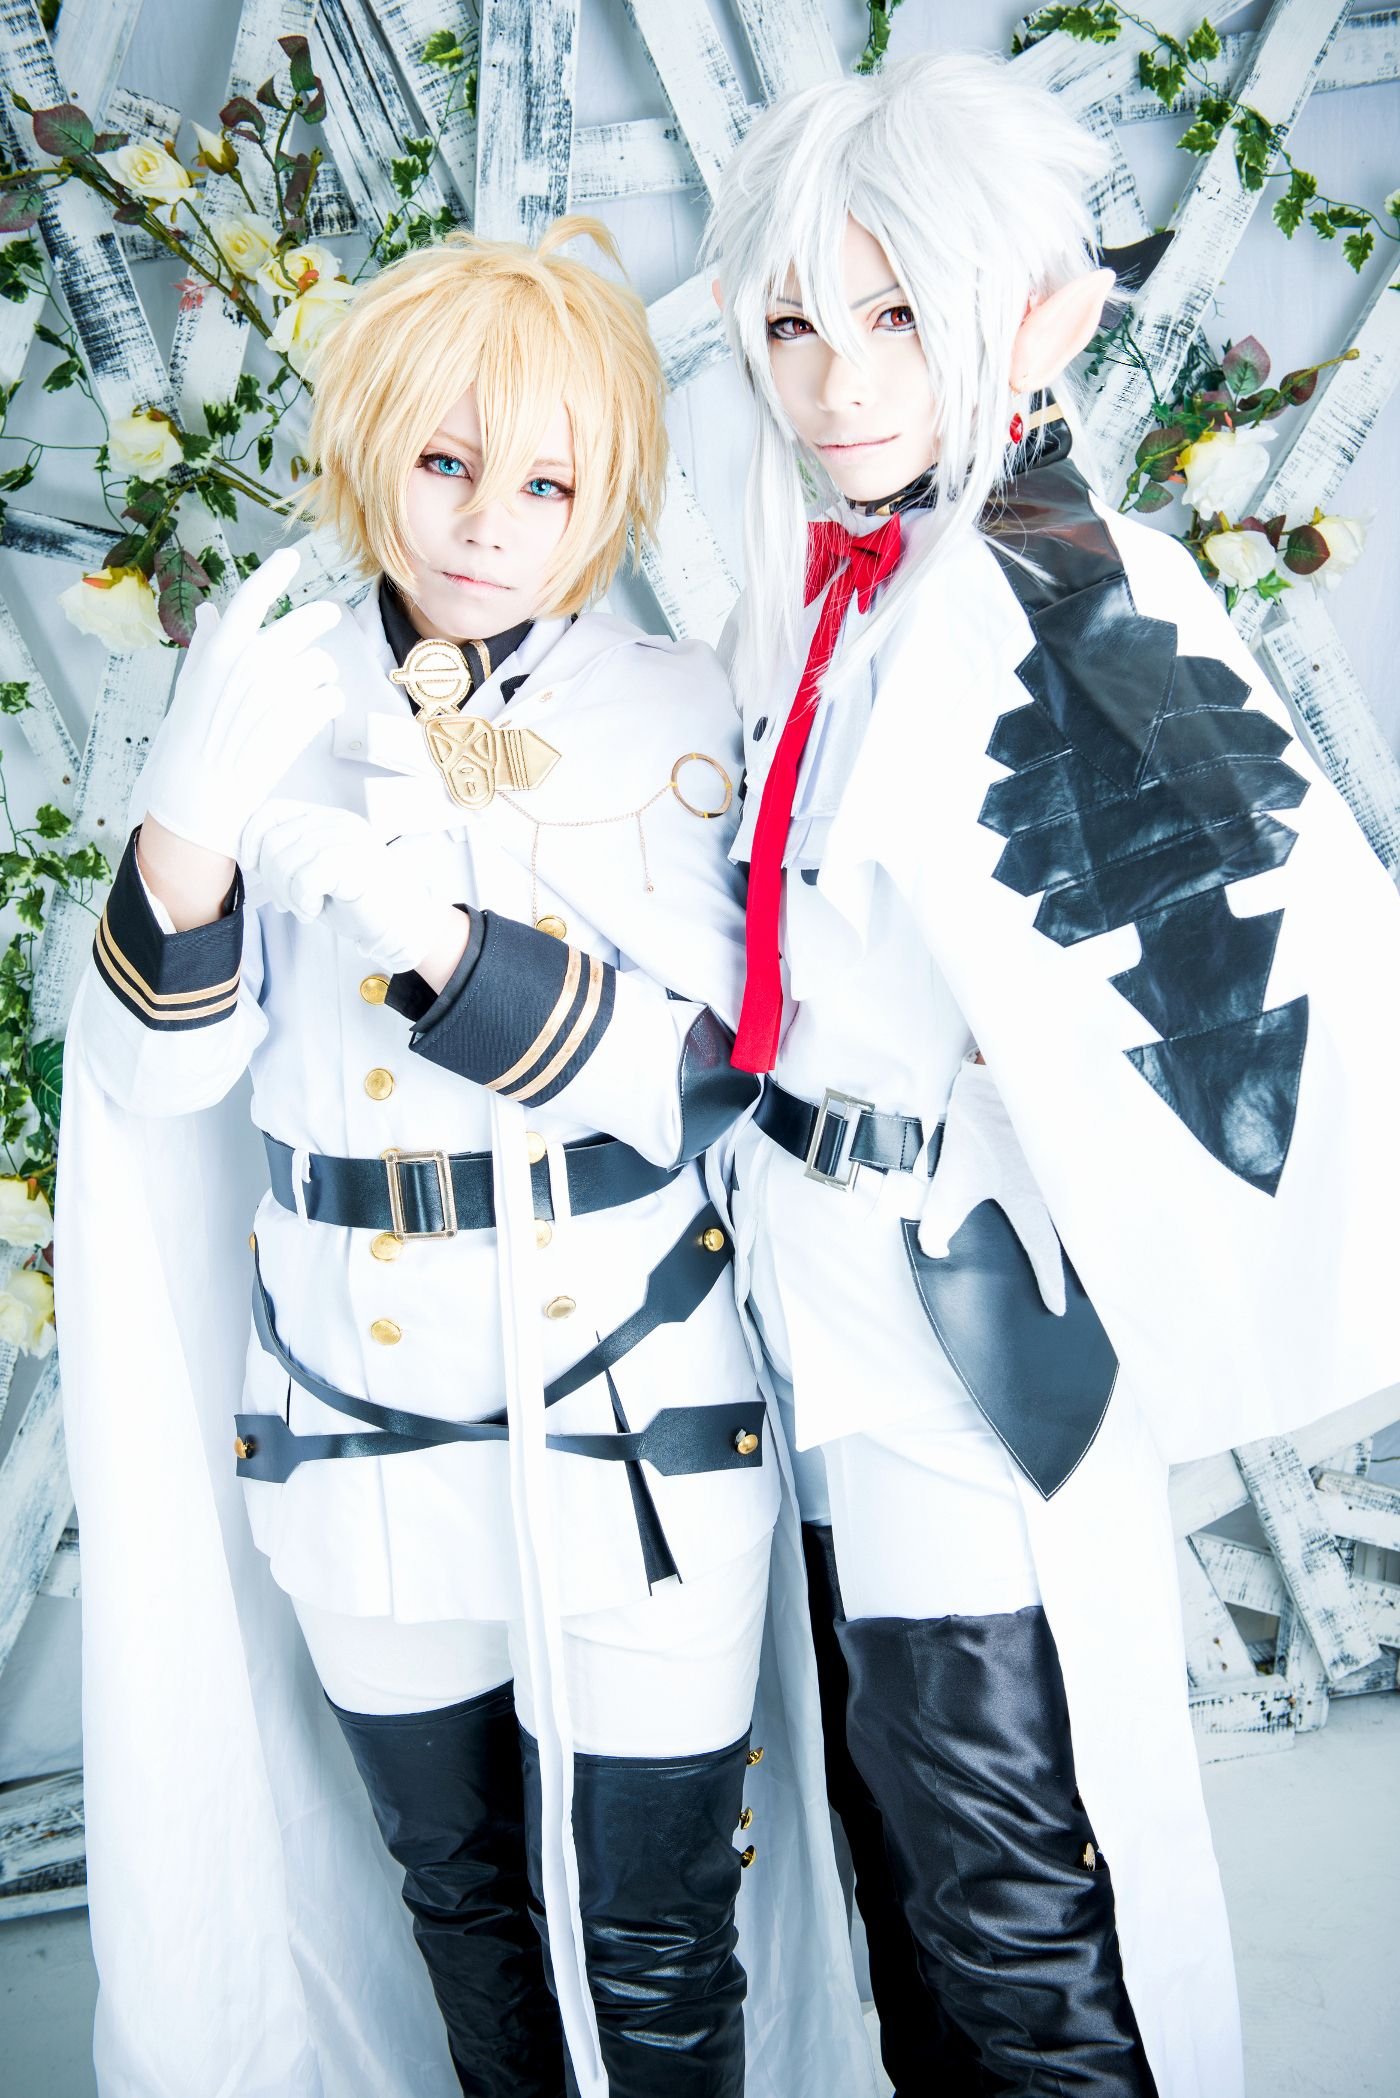 REN(REN.) Ferid Bartley Cosplay Photo - Cure WorldCosplay